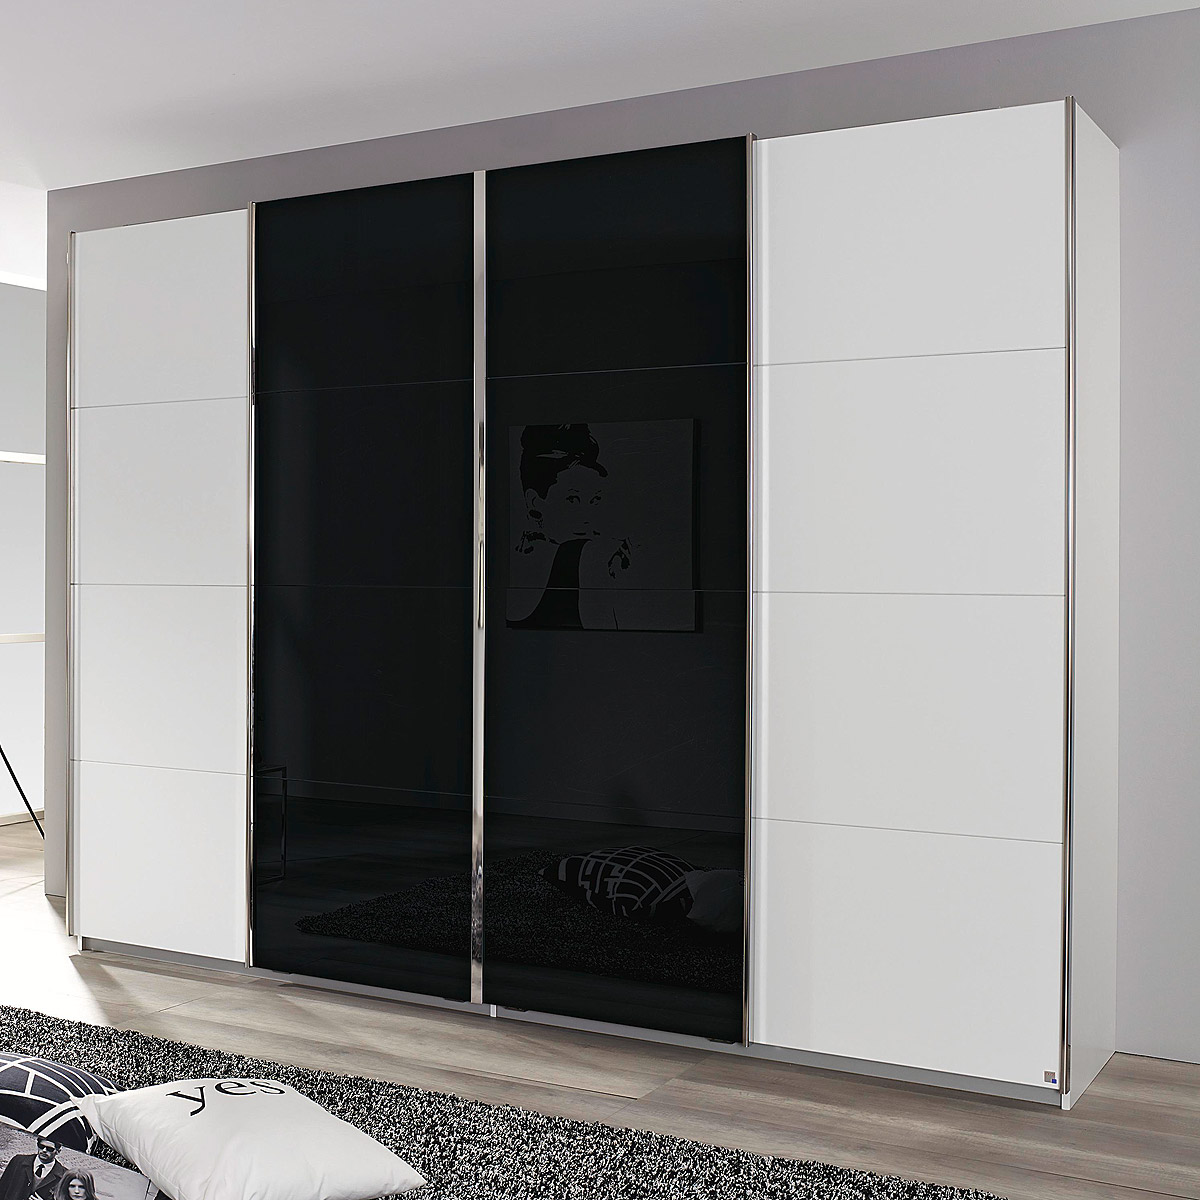 schwebet renschrank syncrono kleiderschrank schrank wei. Black Bedroom Furniture Sets. Home Design Ideas